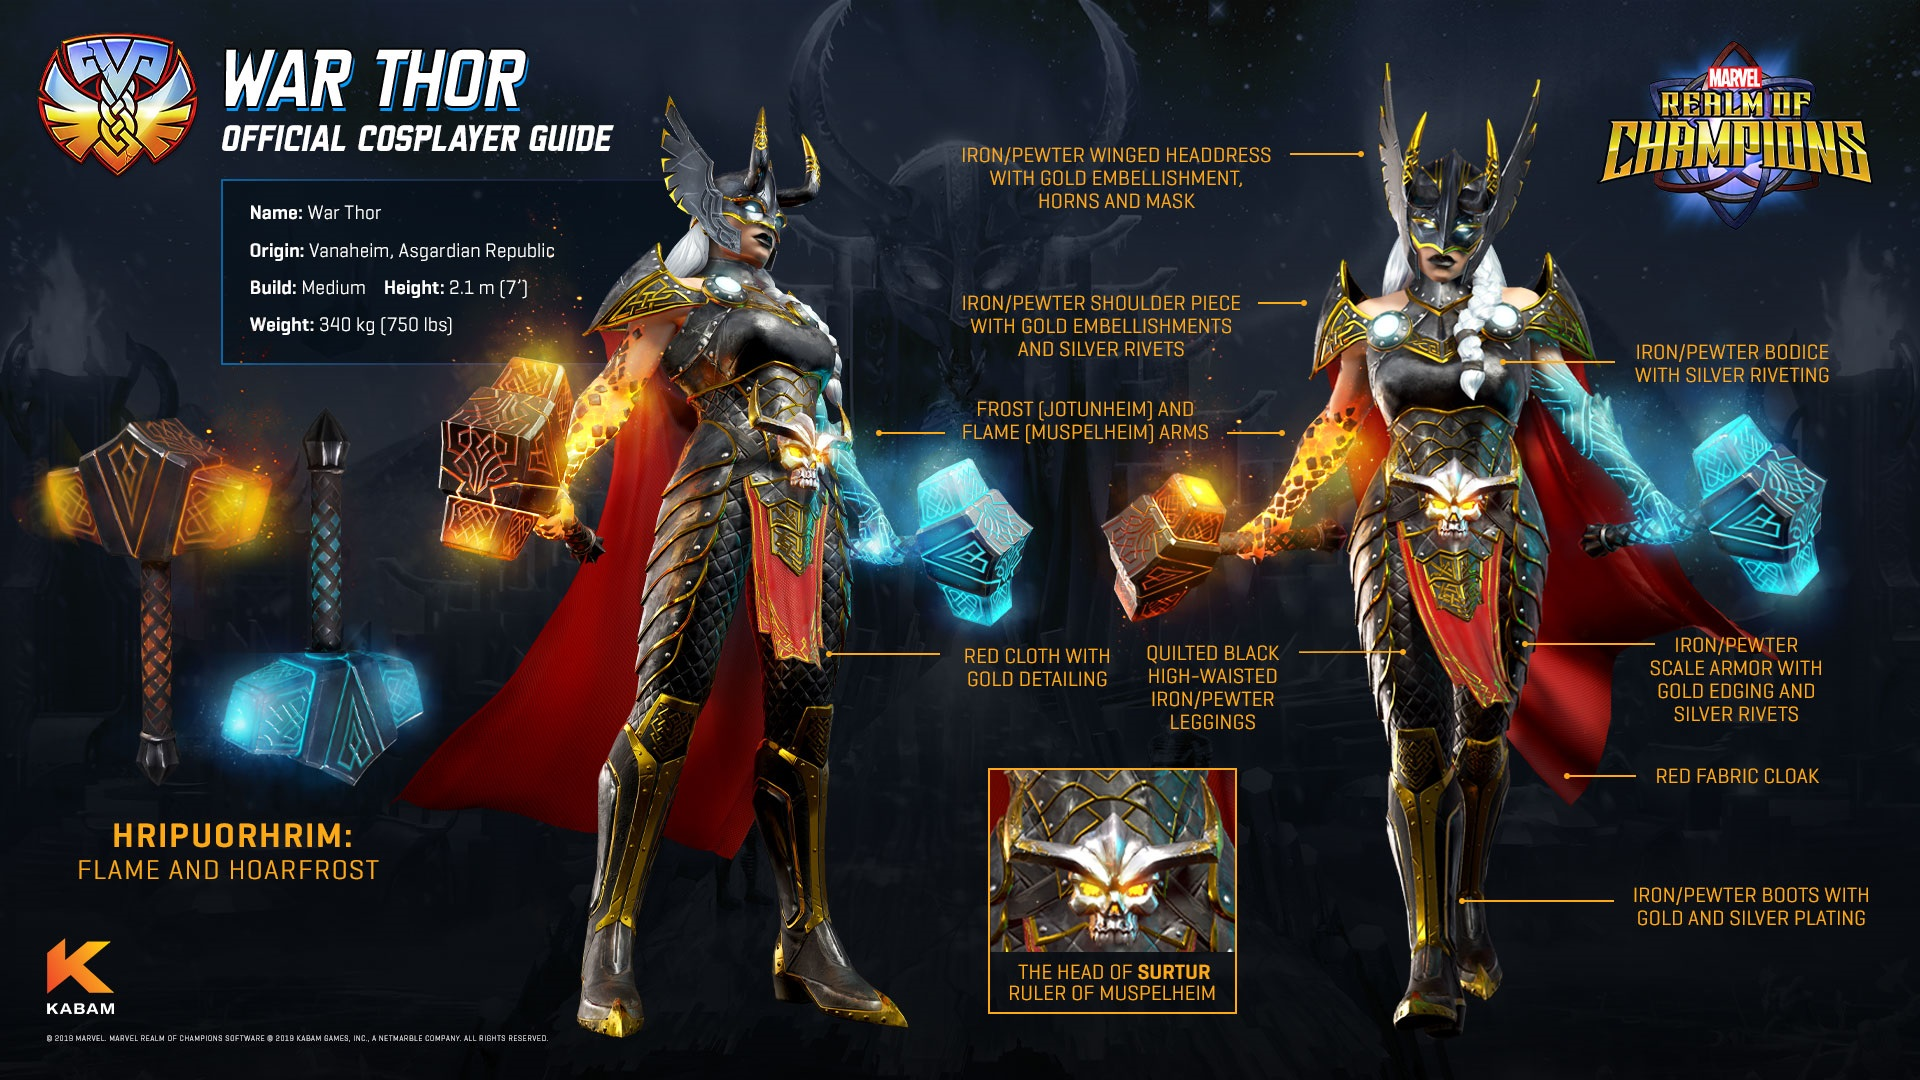 Marvel Realm of Champions War Thor Official Cosplayer Guide.jpg